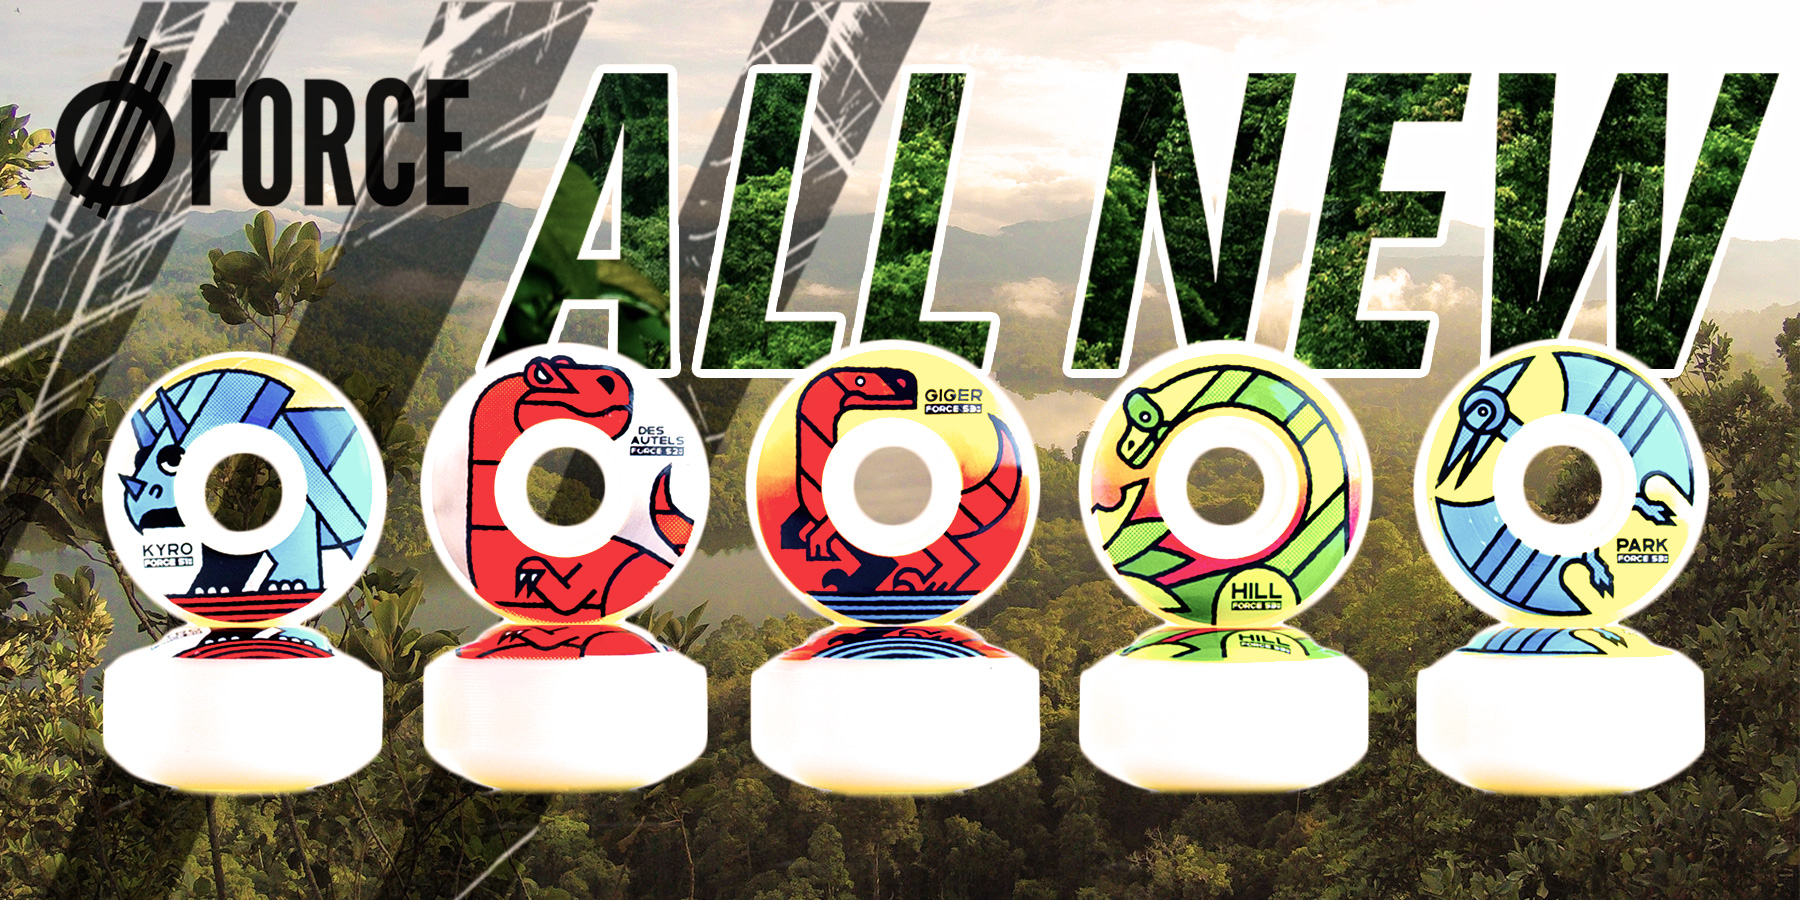 All new FORCE Wheels available now at Shredquarters home of Revive Skateboards, FORCE Wheels, 3Block Skateboards and AmGrip